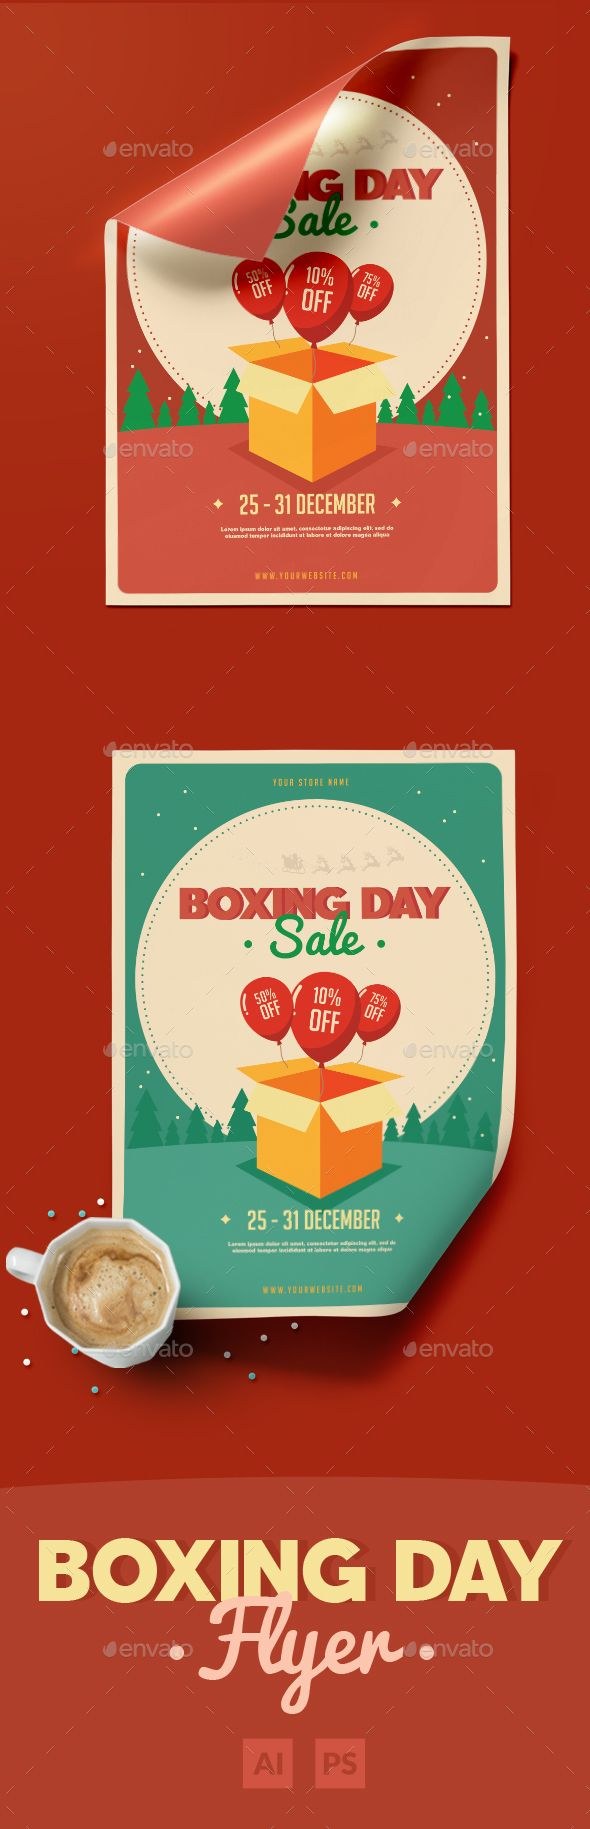 best images about christmas flyer templates boxing day flyer